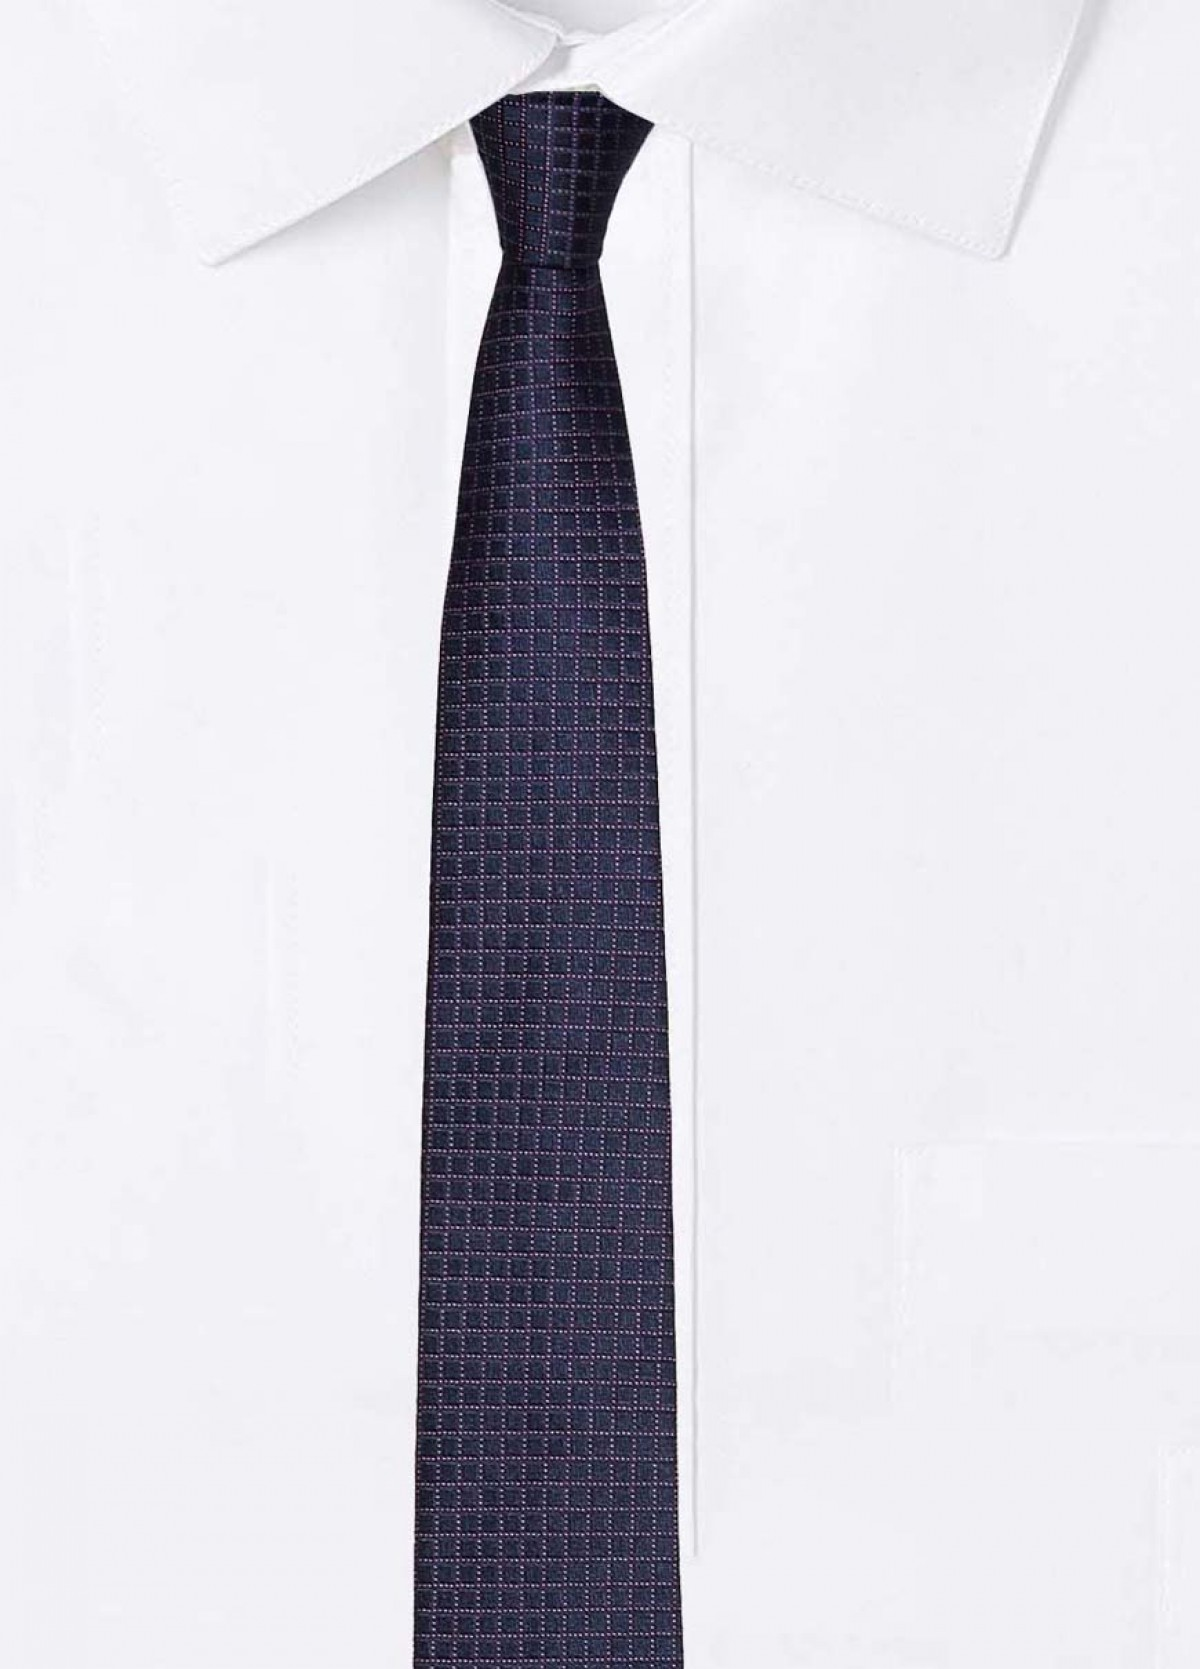 The Navy Stain Resistant Tie